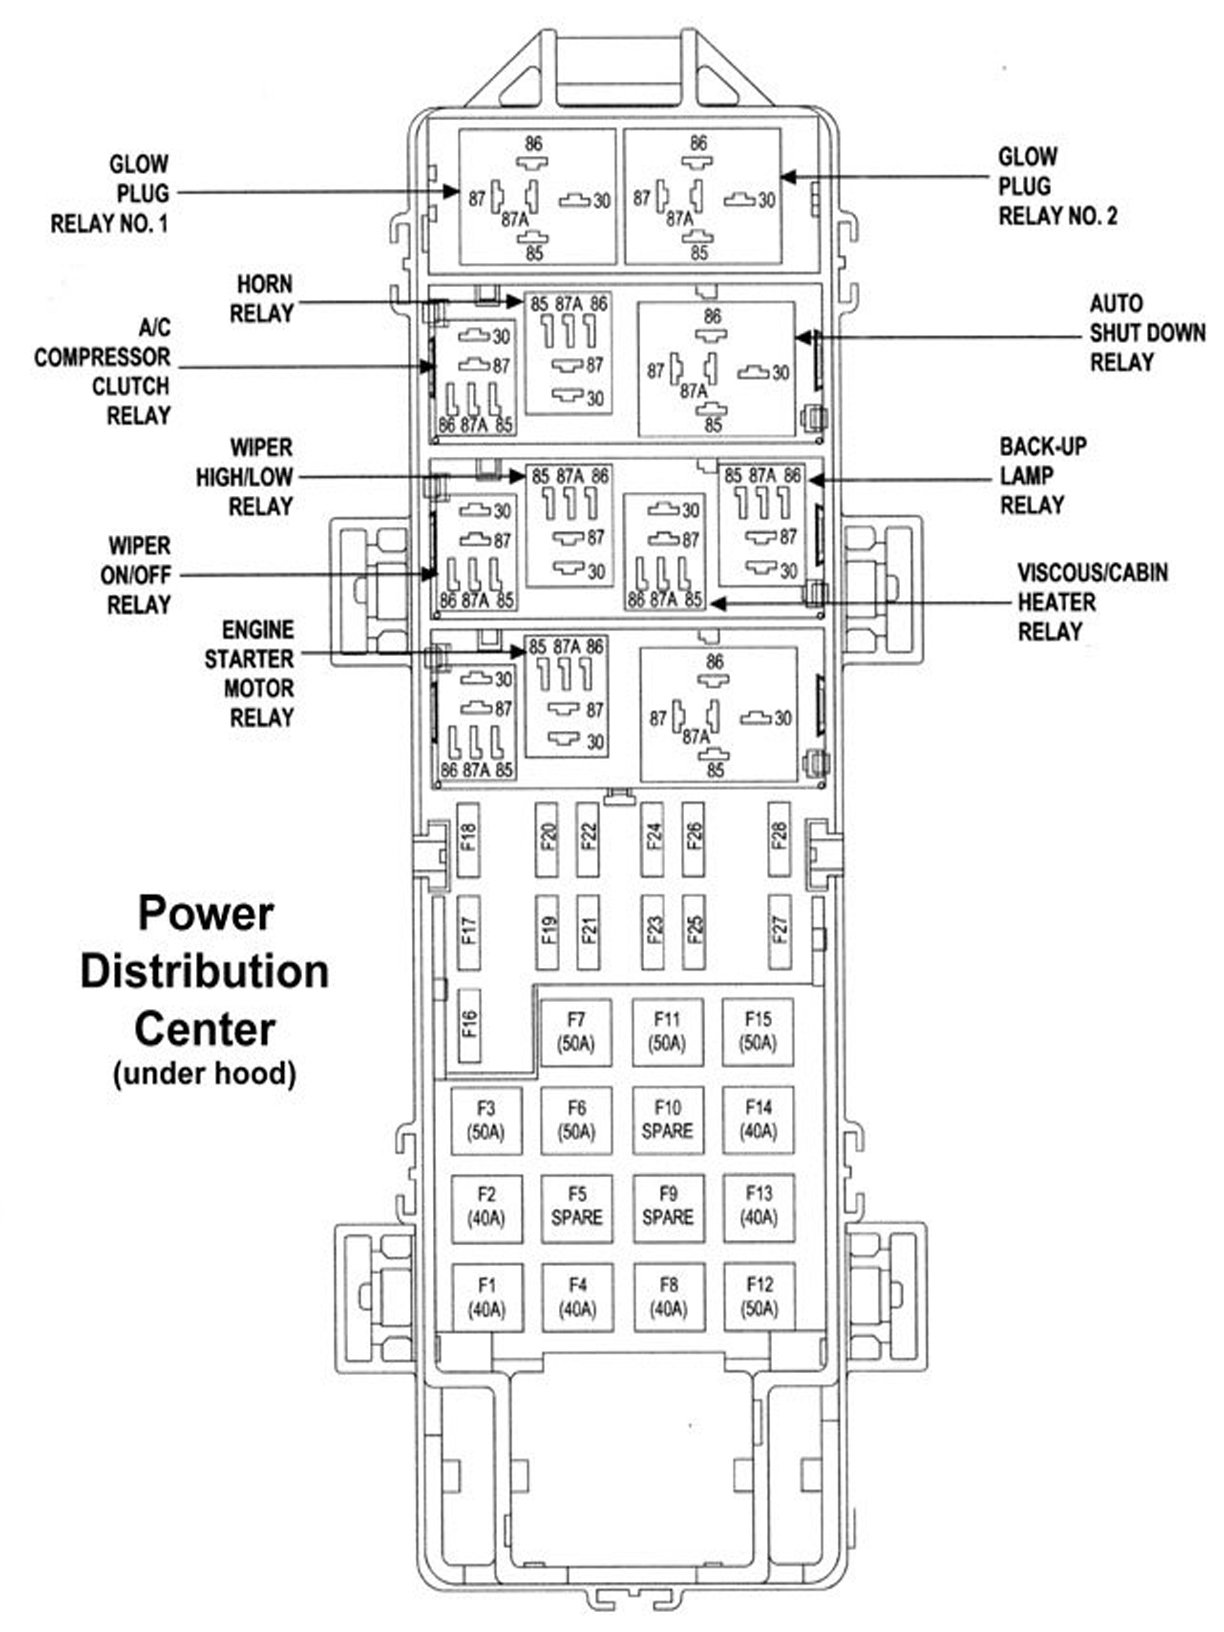 Discussion T17643 ds672141 additionally 99 Jeep Wrangler Fuse Box Diagram besides 1997 Audi A6 Engine Diagram further Sensor 6 4 Powerstroke Engine Diagram Html also Jeep Grand Cherokee 1999 2004 Fuse Box Diagram 397760. on 1999 jeep grand cherokee fuse box diagram